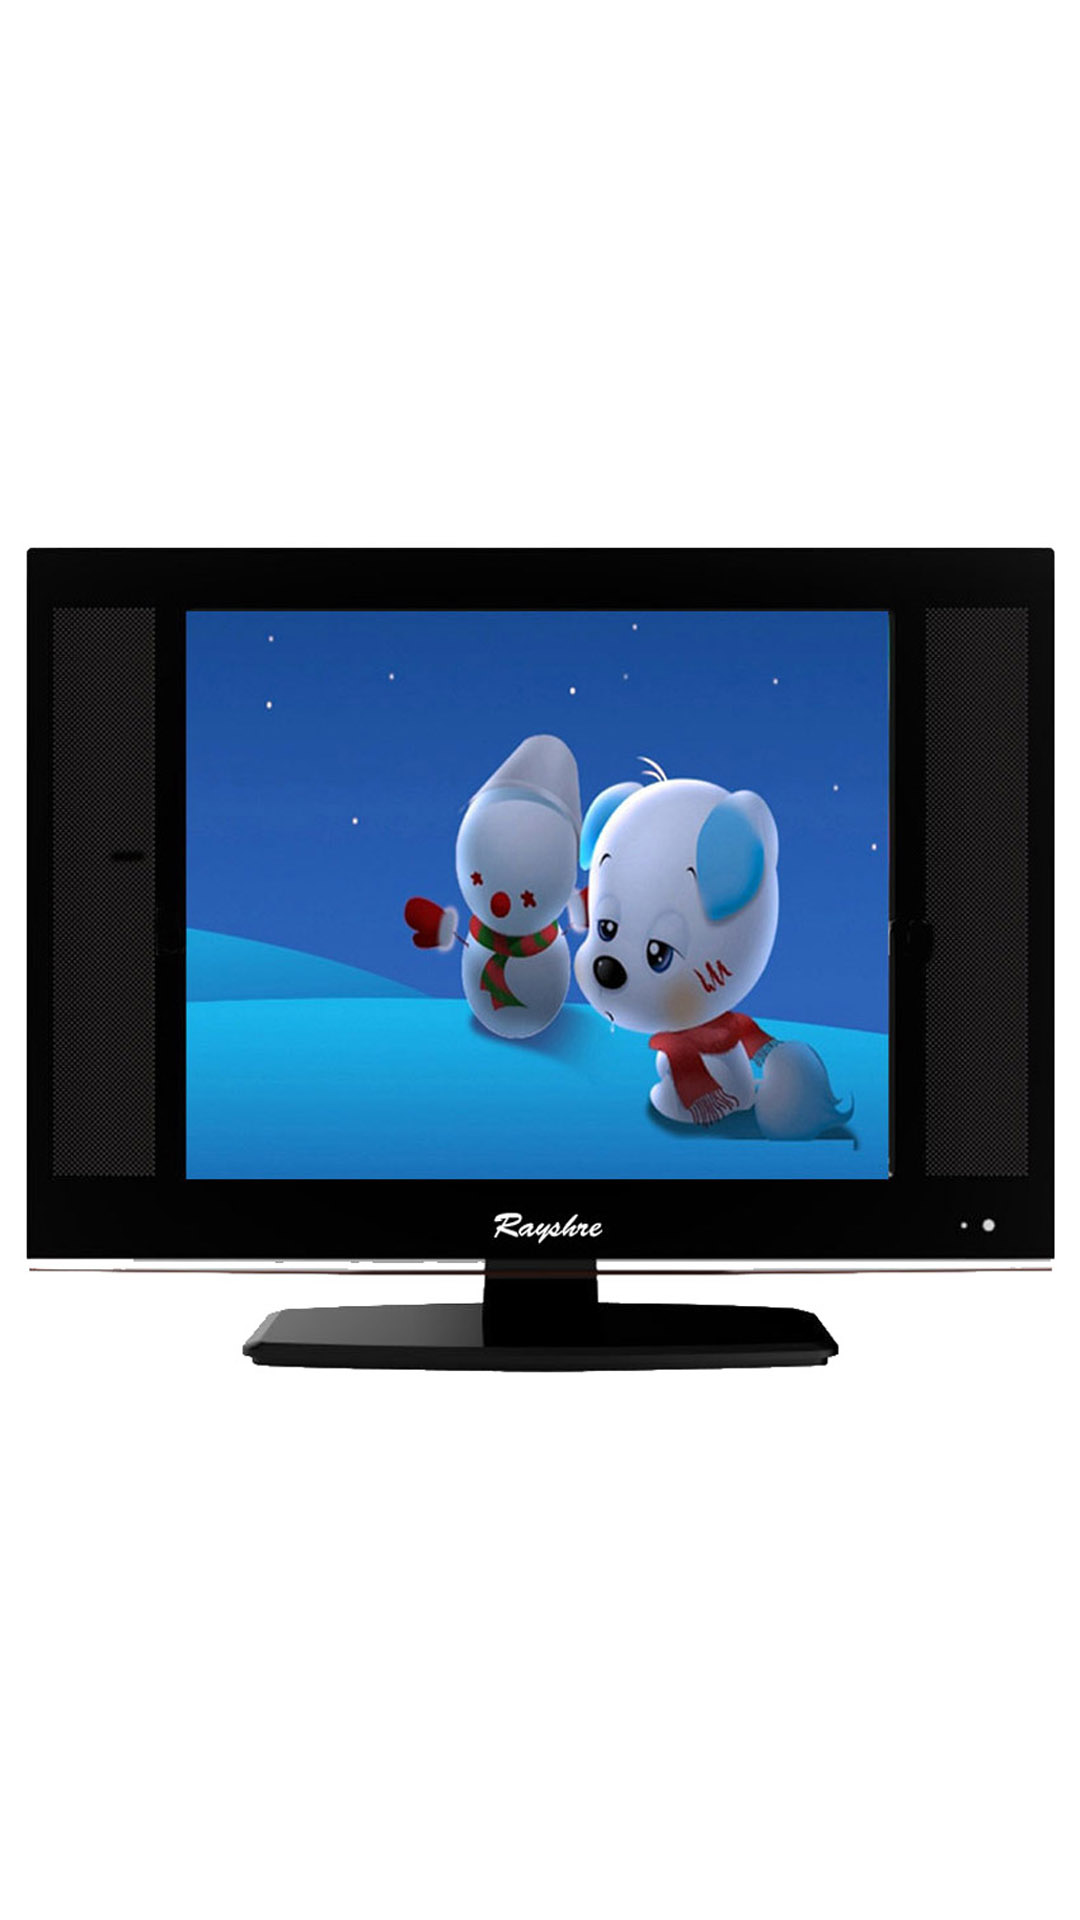 Rayshre REPL19LCDM1 48.77 cm (19.2) Smart LCD TV (HD Ready)